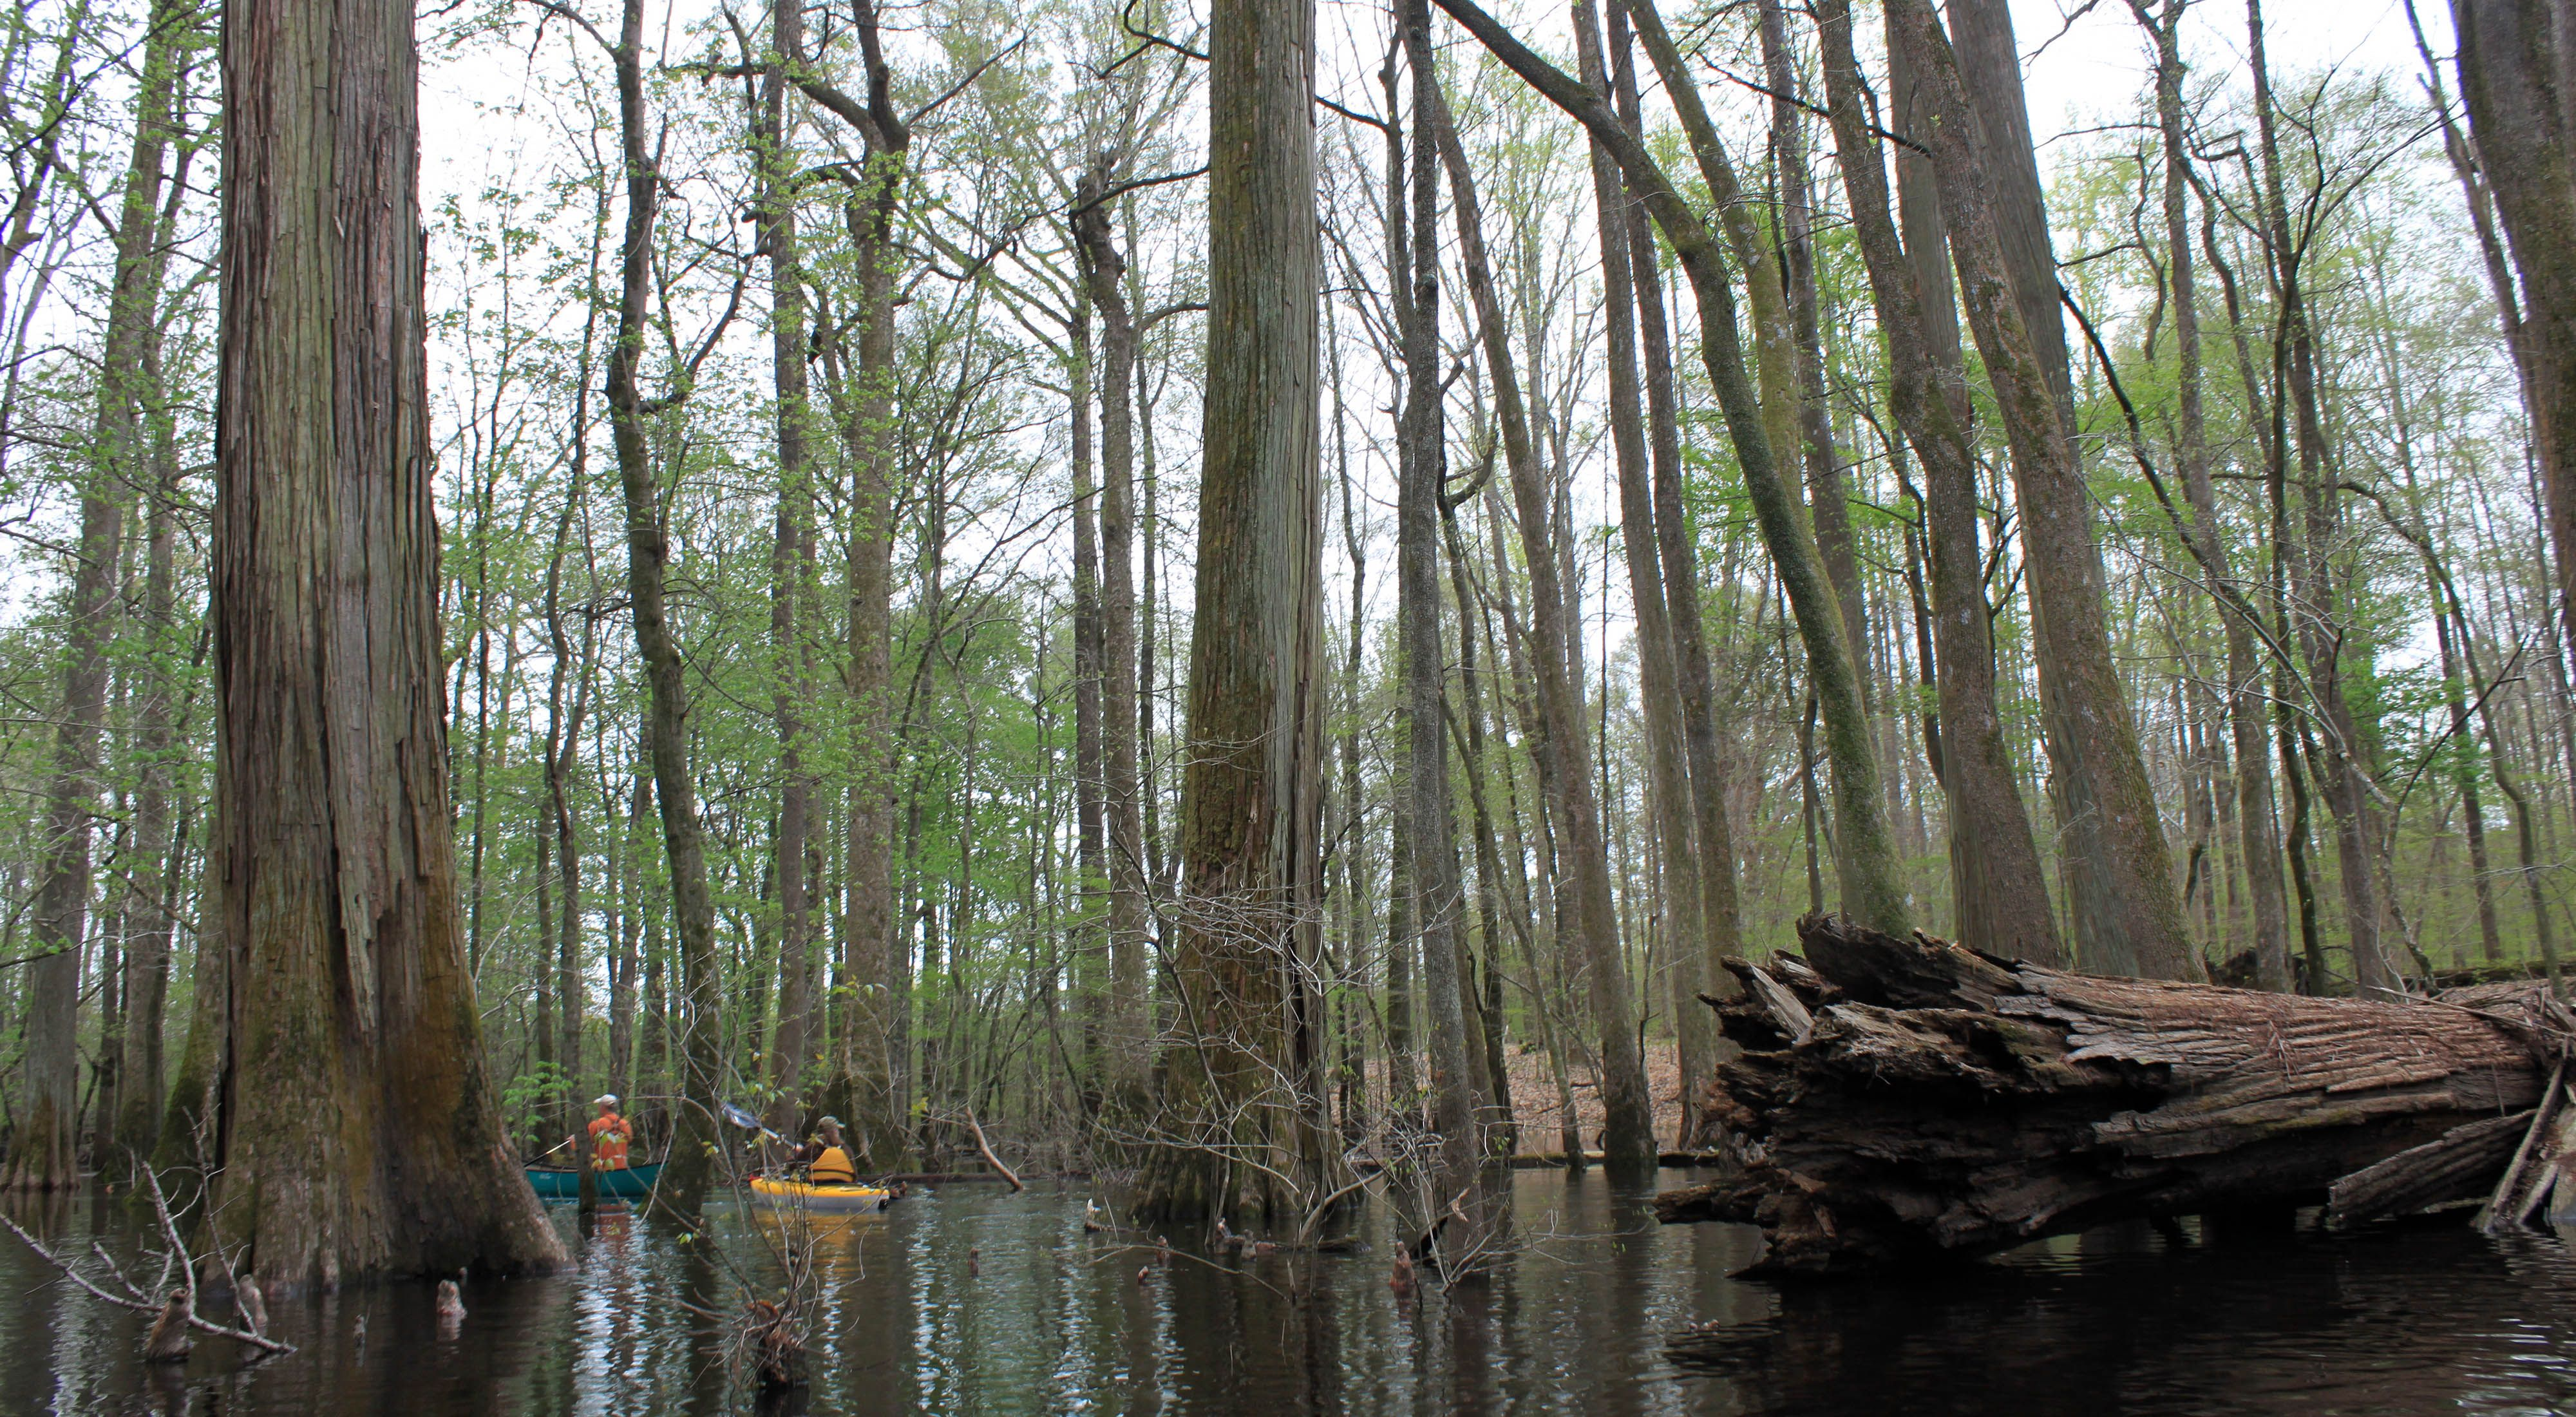 Canoeing through the cypress swamp.